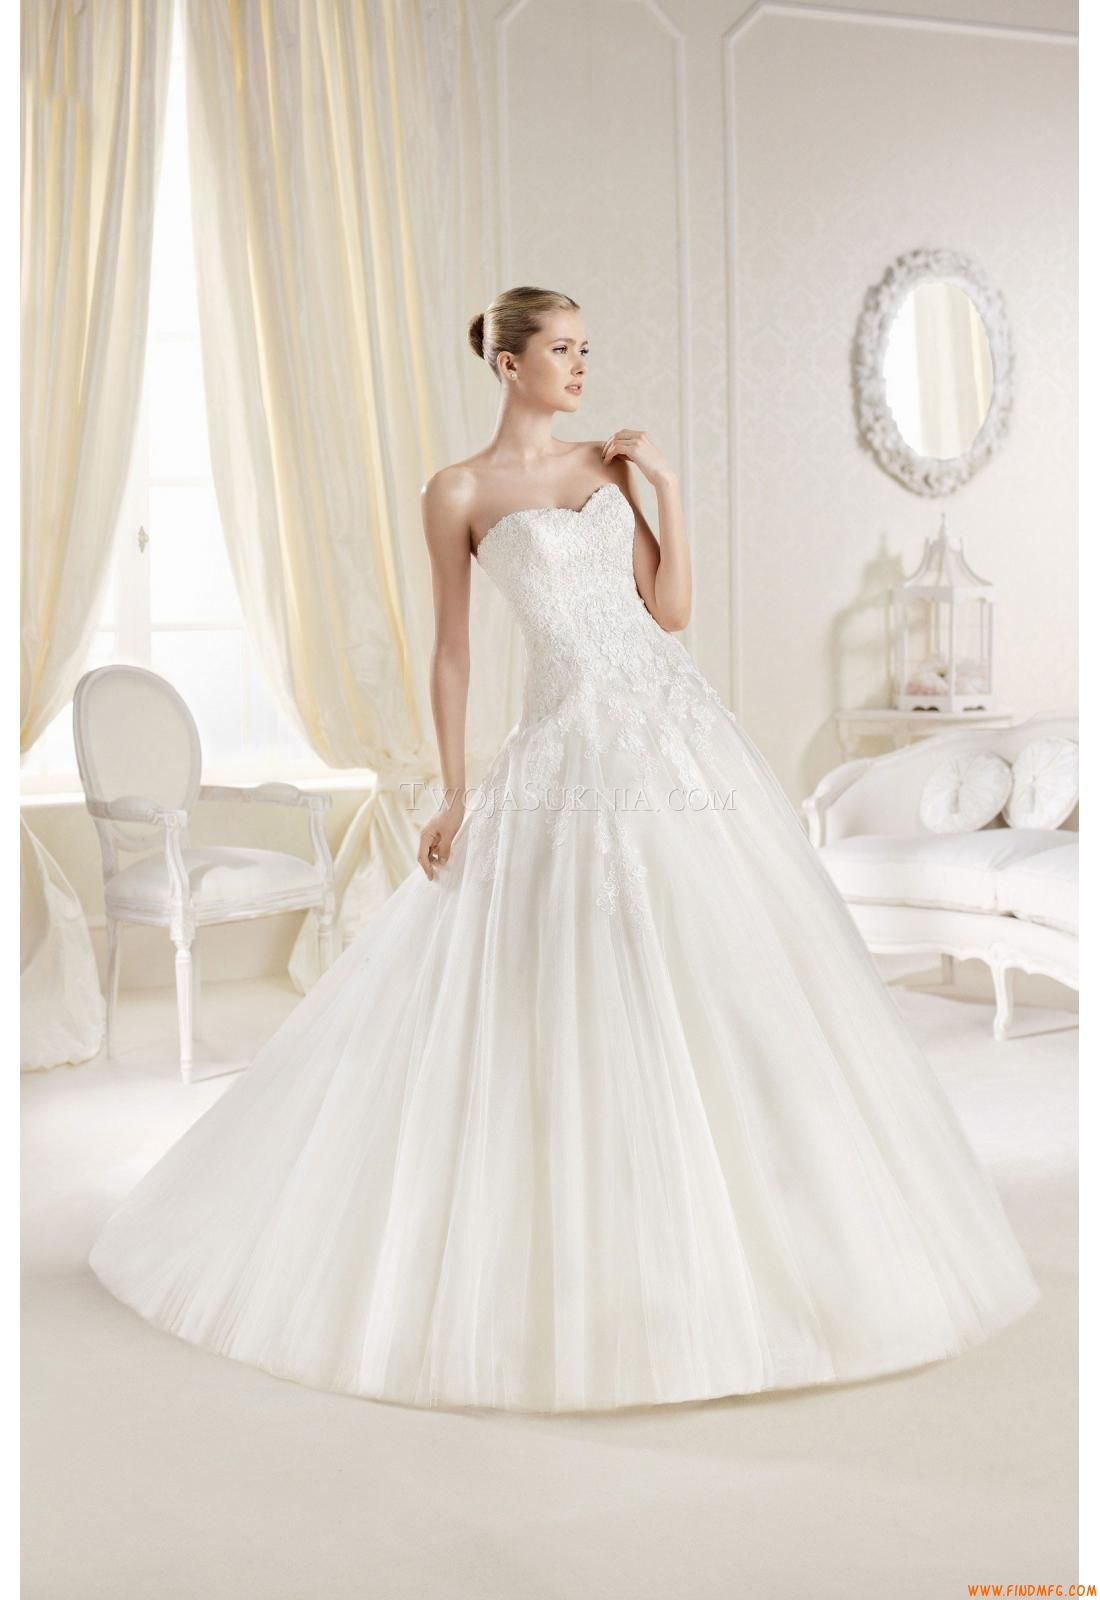 7785c2983aee Where To Buy Used Wedding Dresses Online - raveitsafe